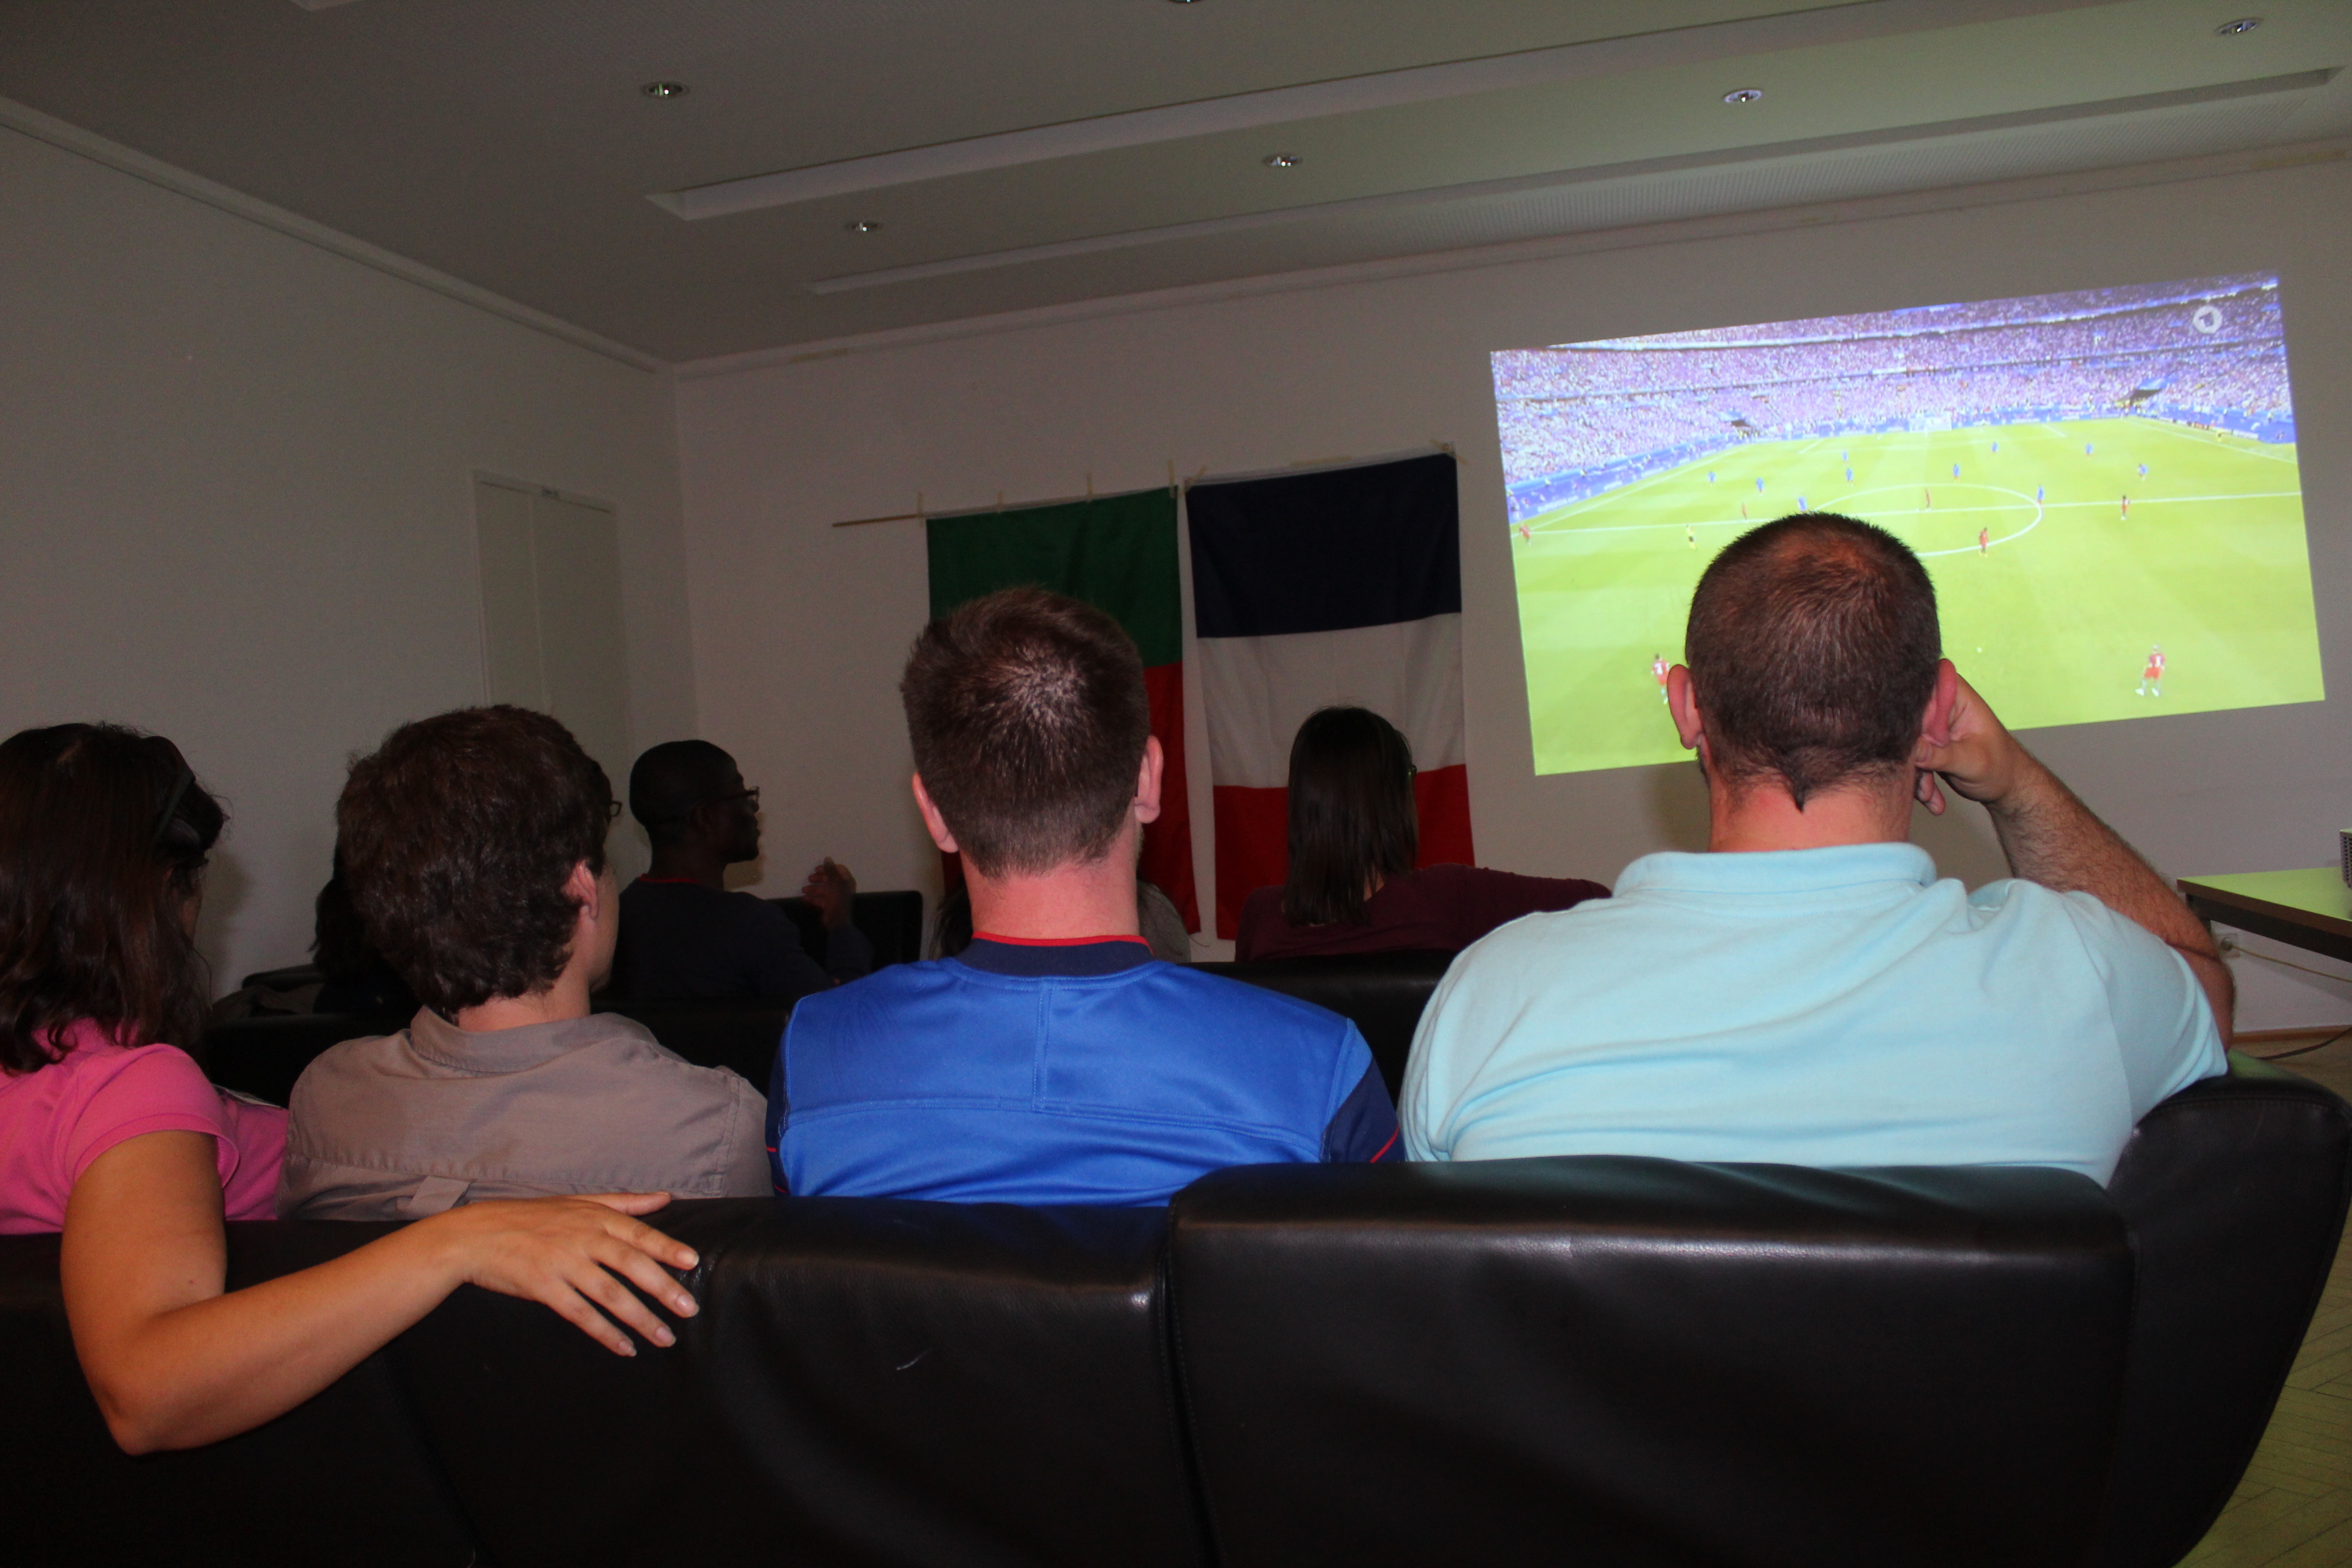 ... to go with the game (UEFA euro 2016 final match)